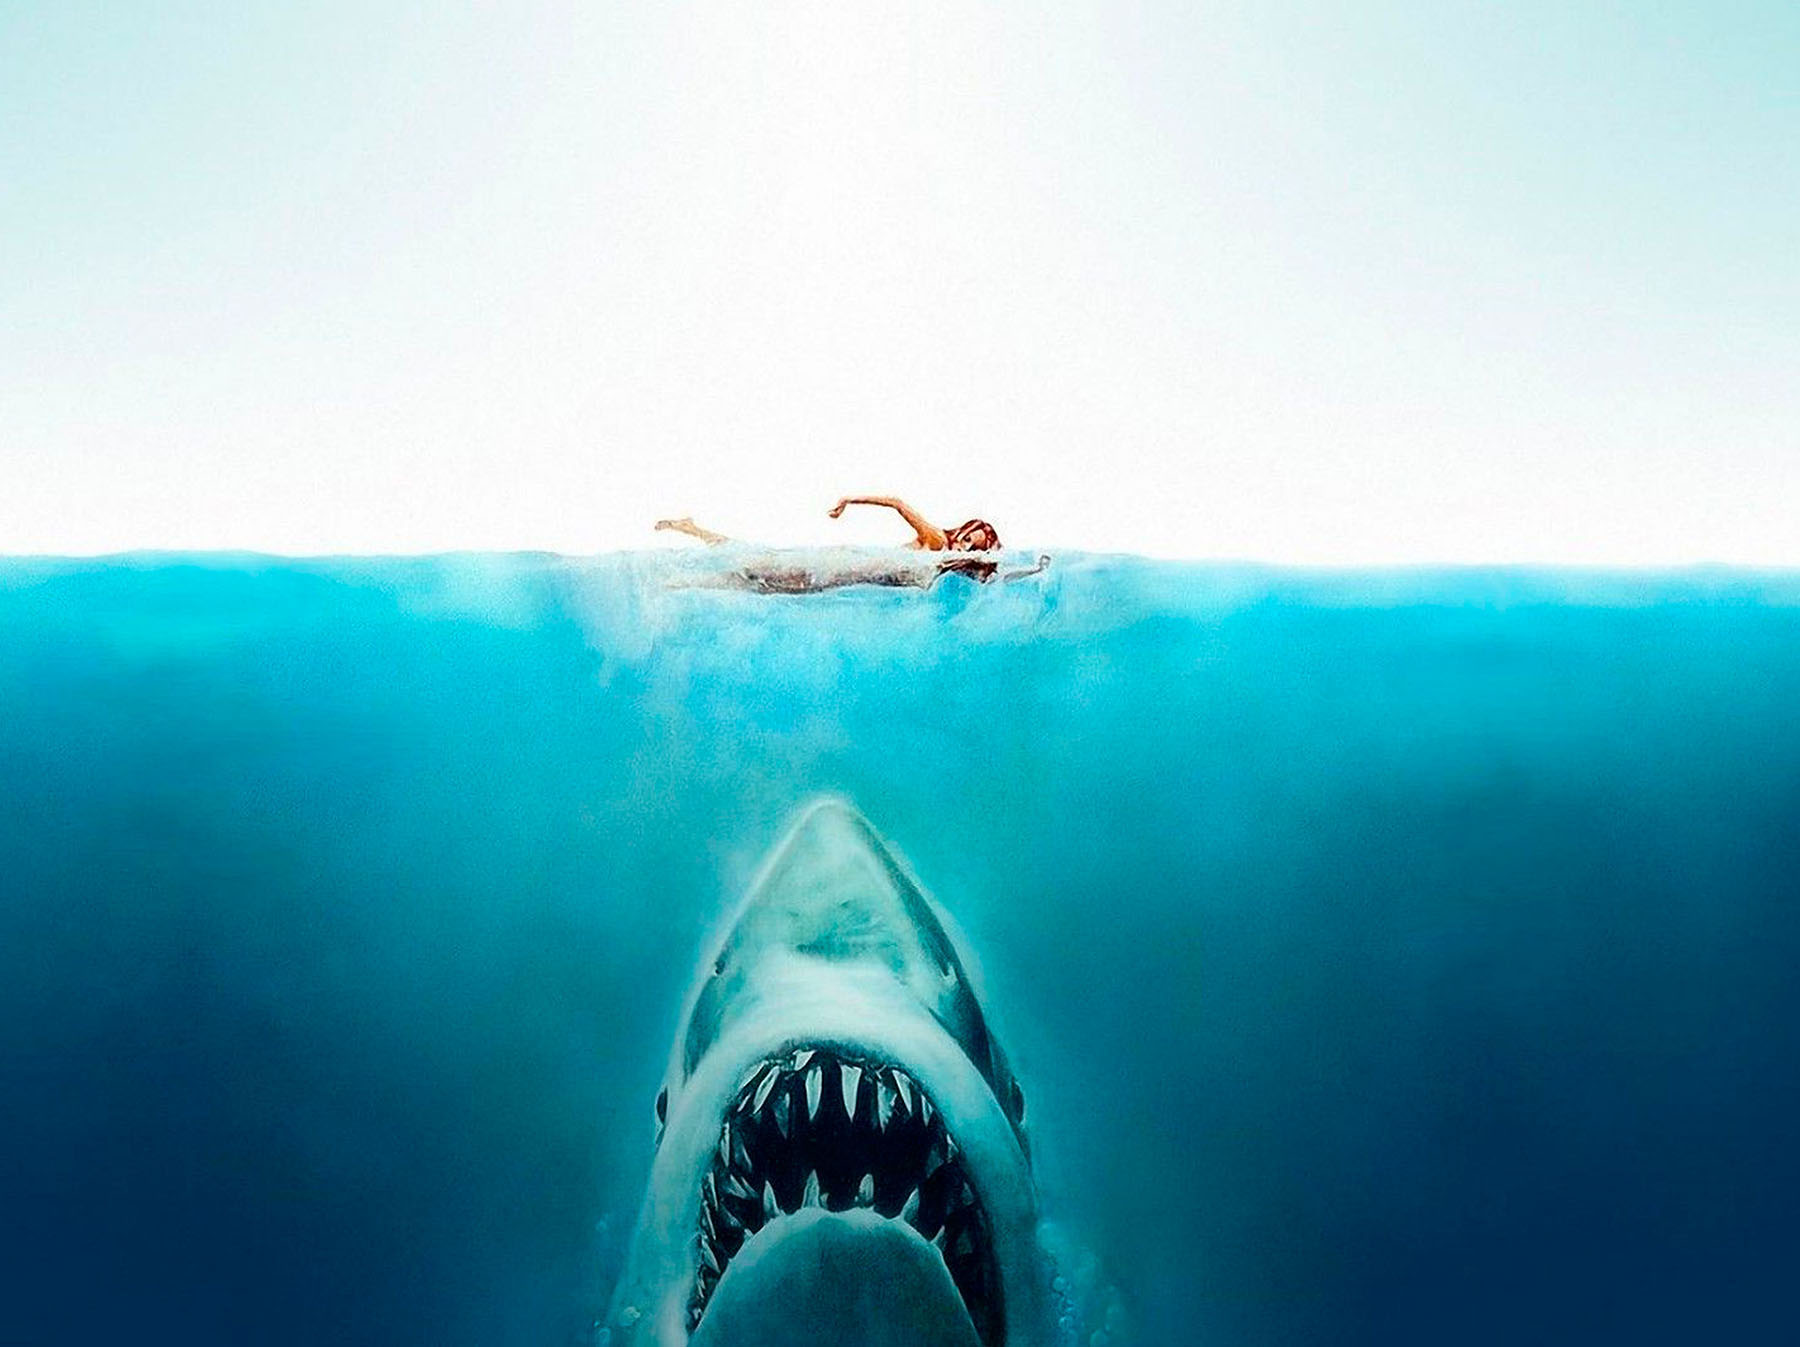 Jaws book jacket and movie poster illustration by Roger Kastel.1974.